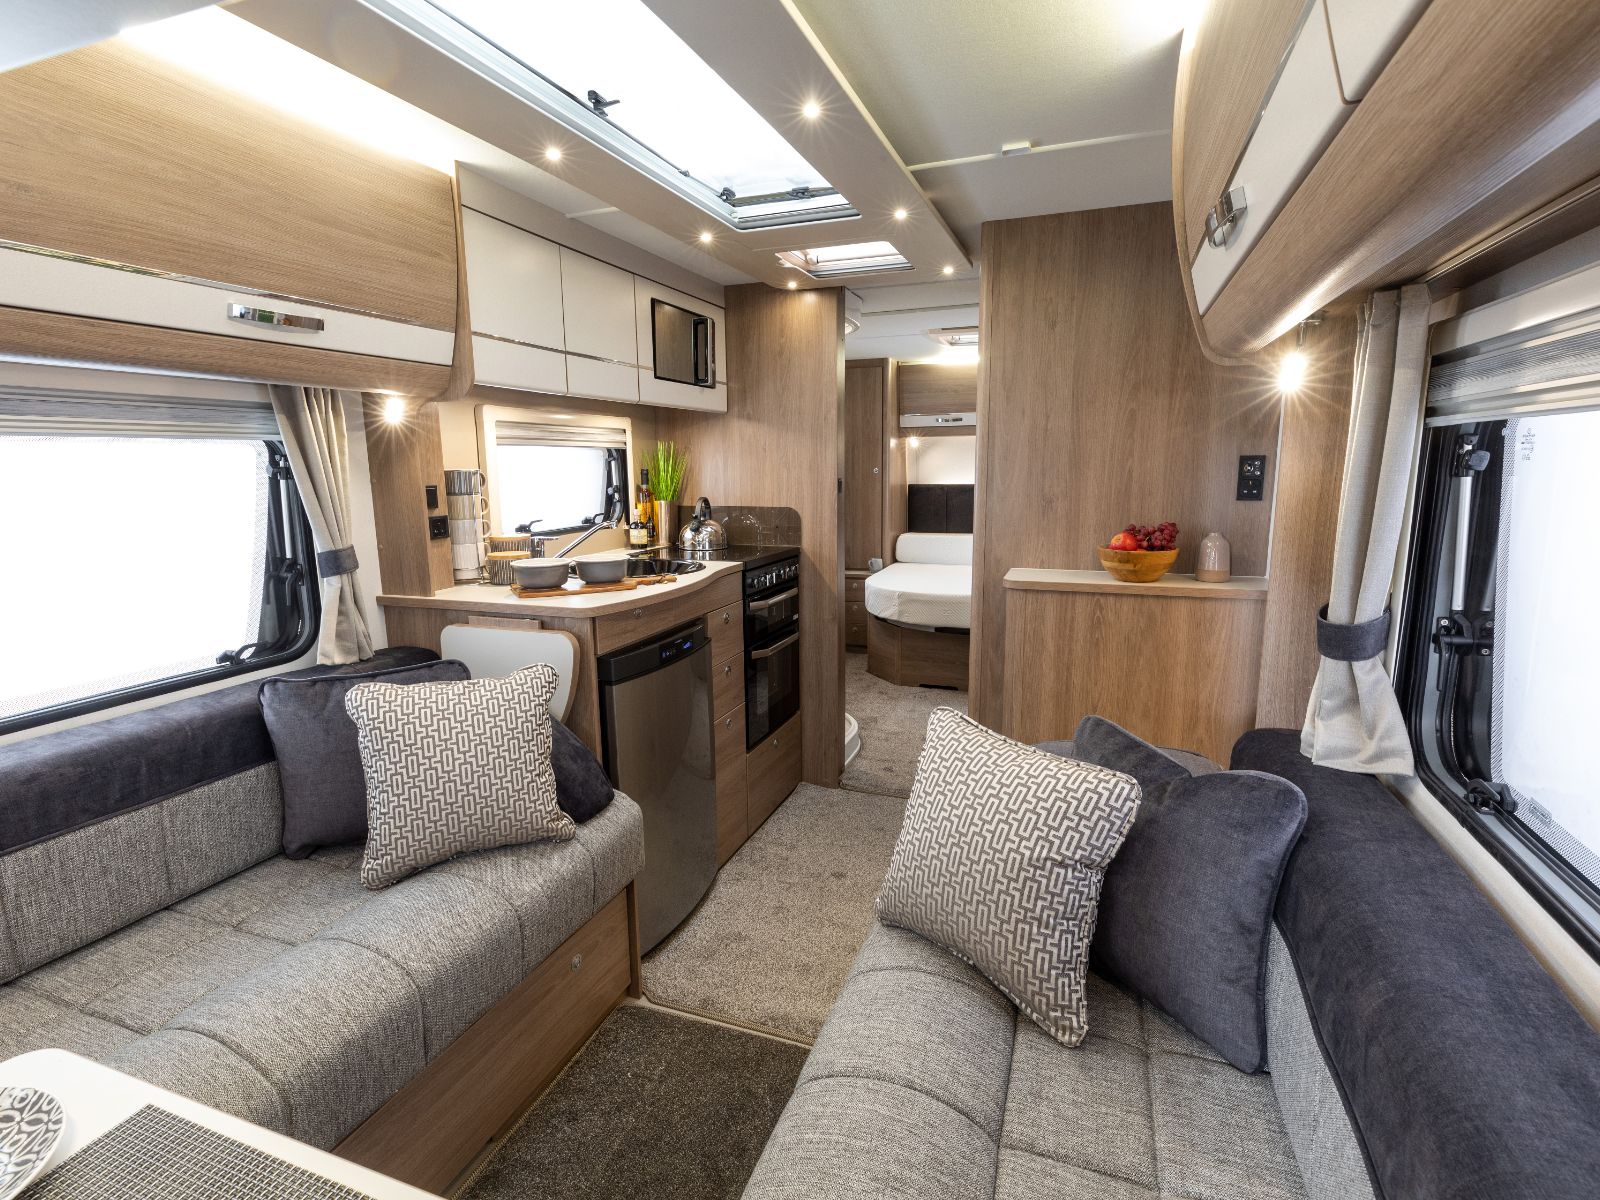 Kensington Caravan Lounge Area with Kitchen and Bedroom View'